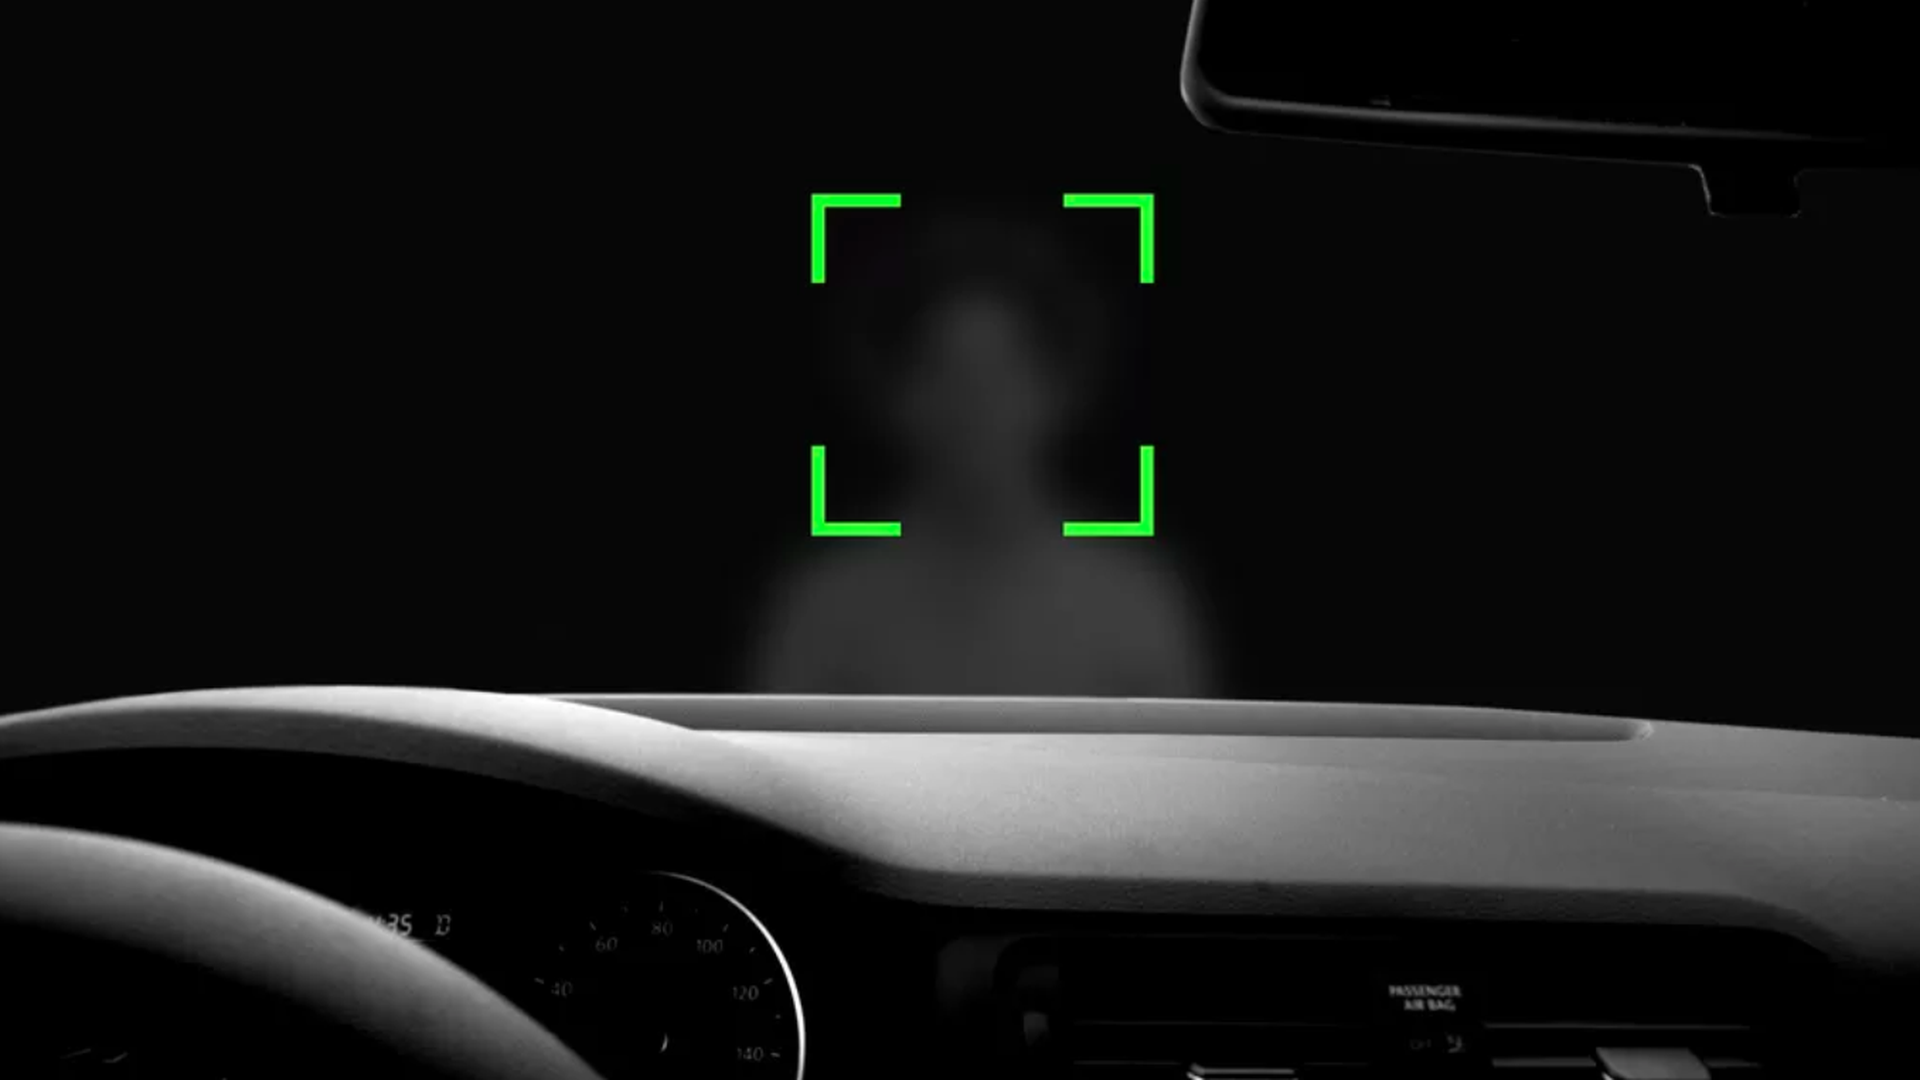 In this illustration, the viewer looks through the windshield from inside a car and sees a green square around a blurred persons face.